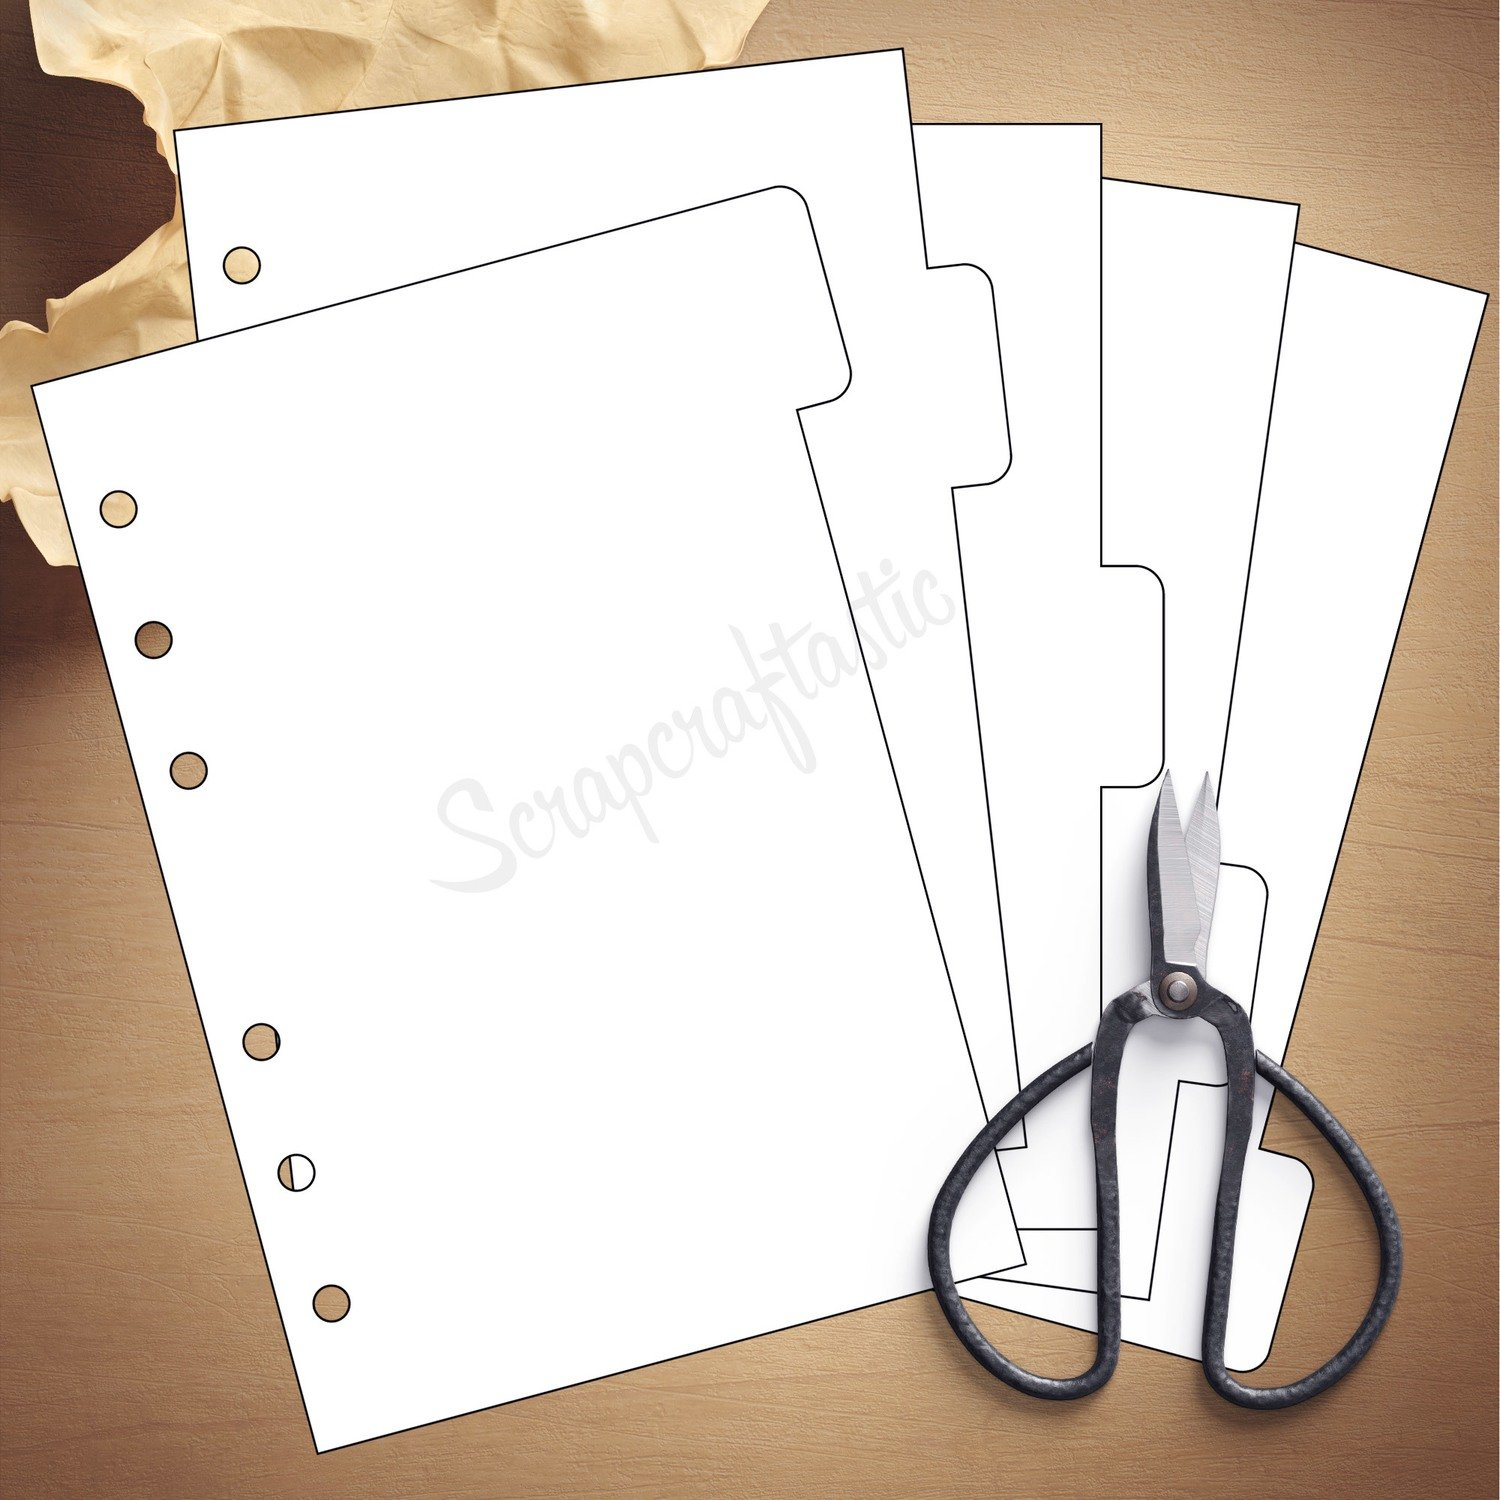 image regarding Printable Divider Tabs Template called A6 RINGS - 5 Tab Divider Printable Templates and Slash Documents